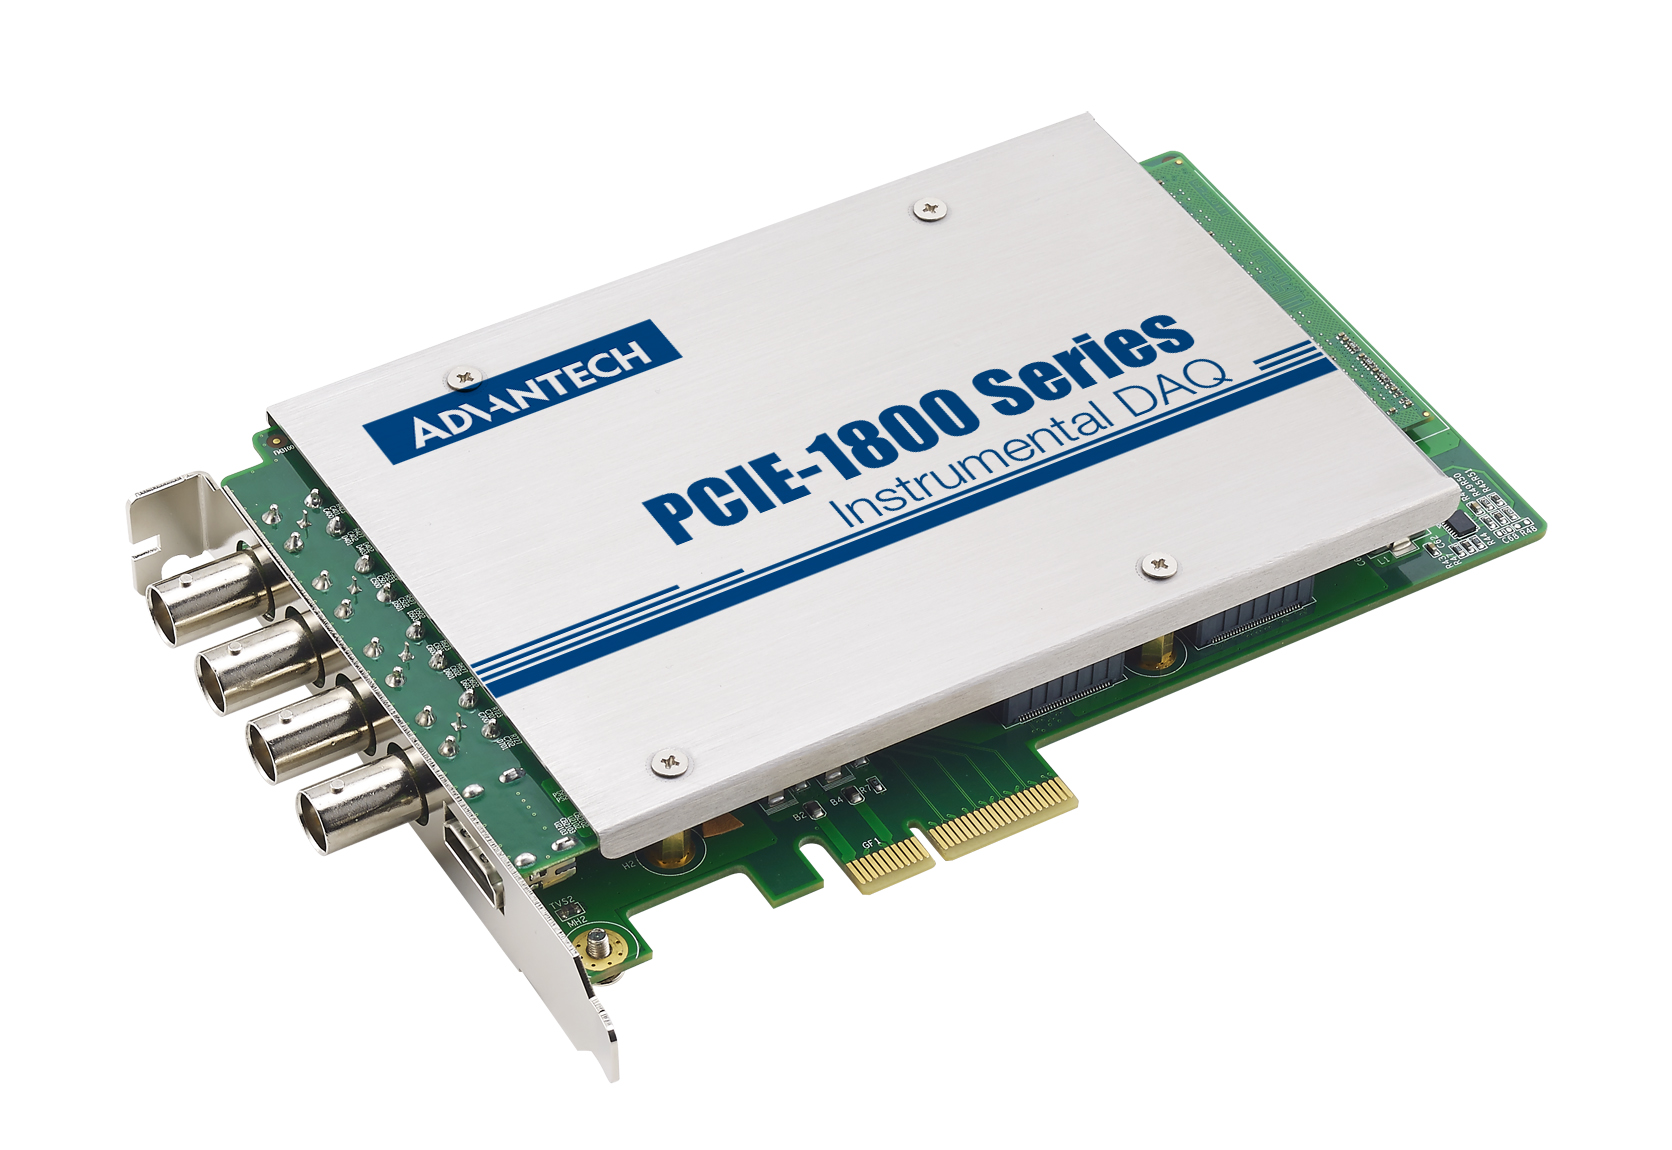 PCIE-1802 New8-ch, 24-Bit, 216 kS/s Dynamic Signal Acquisition PCI Express Card